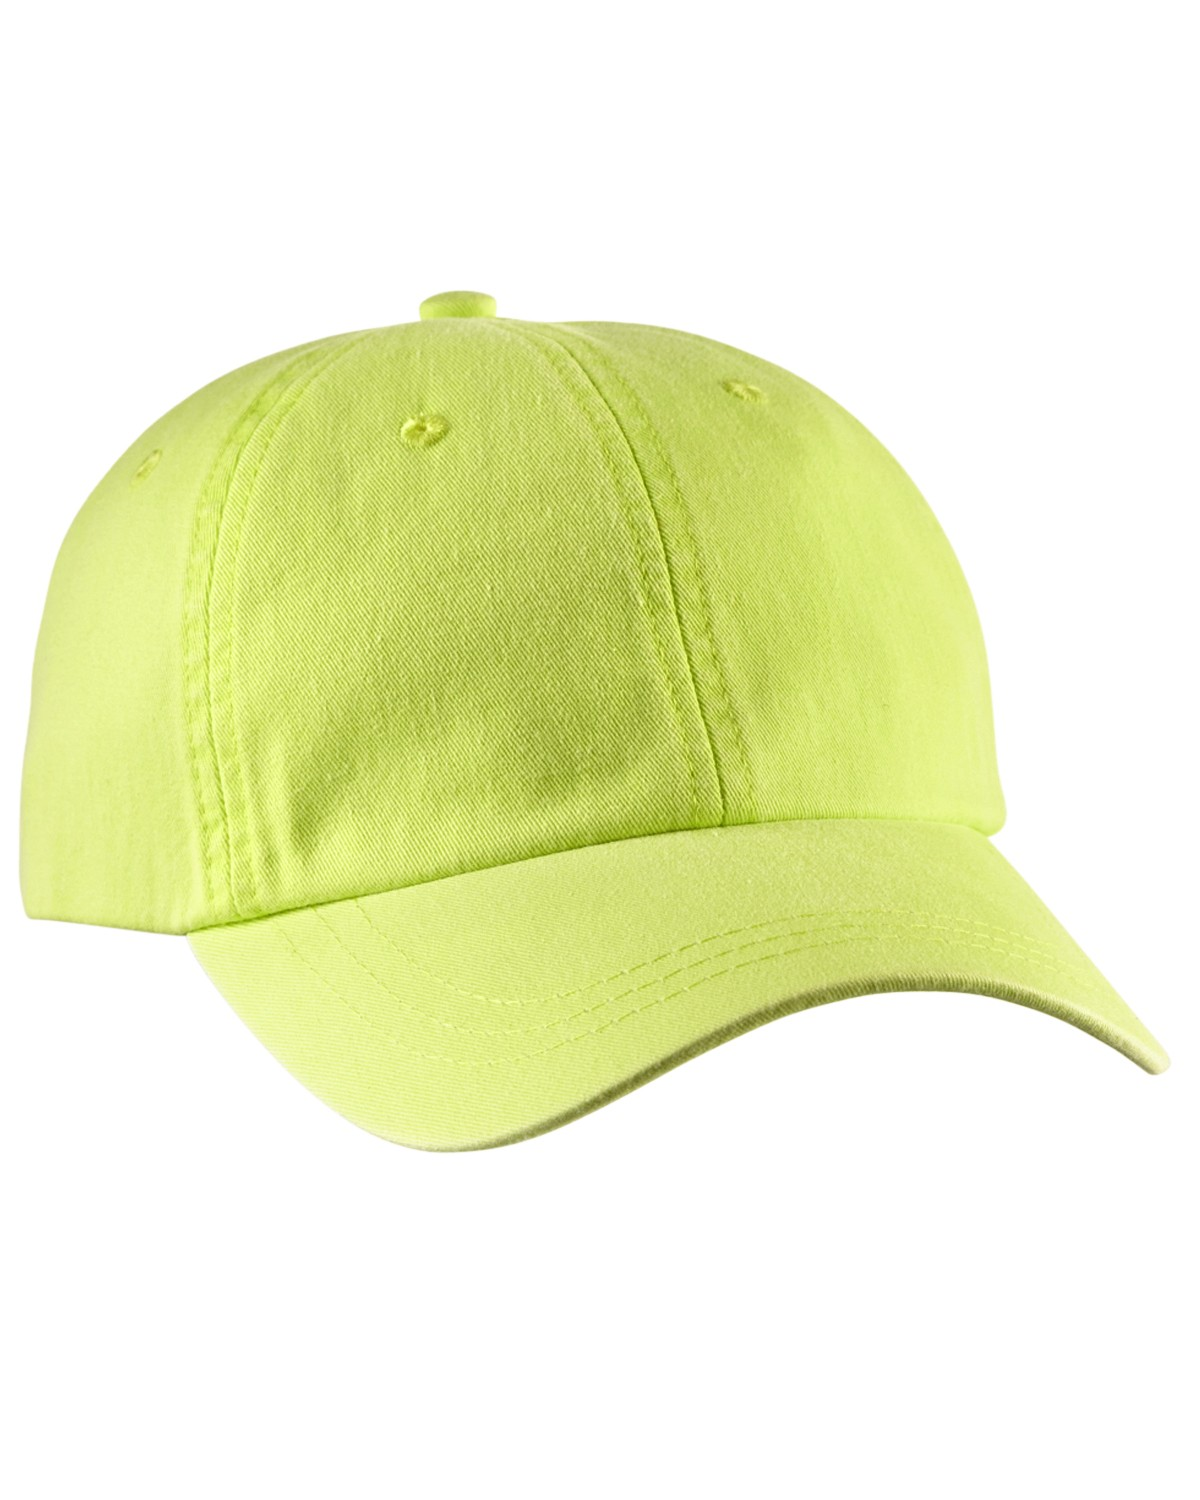 AD969 Adams NEON YELLOW